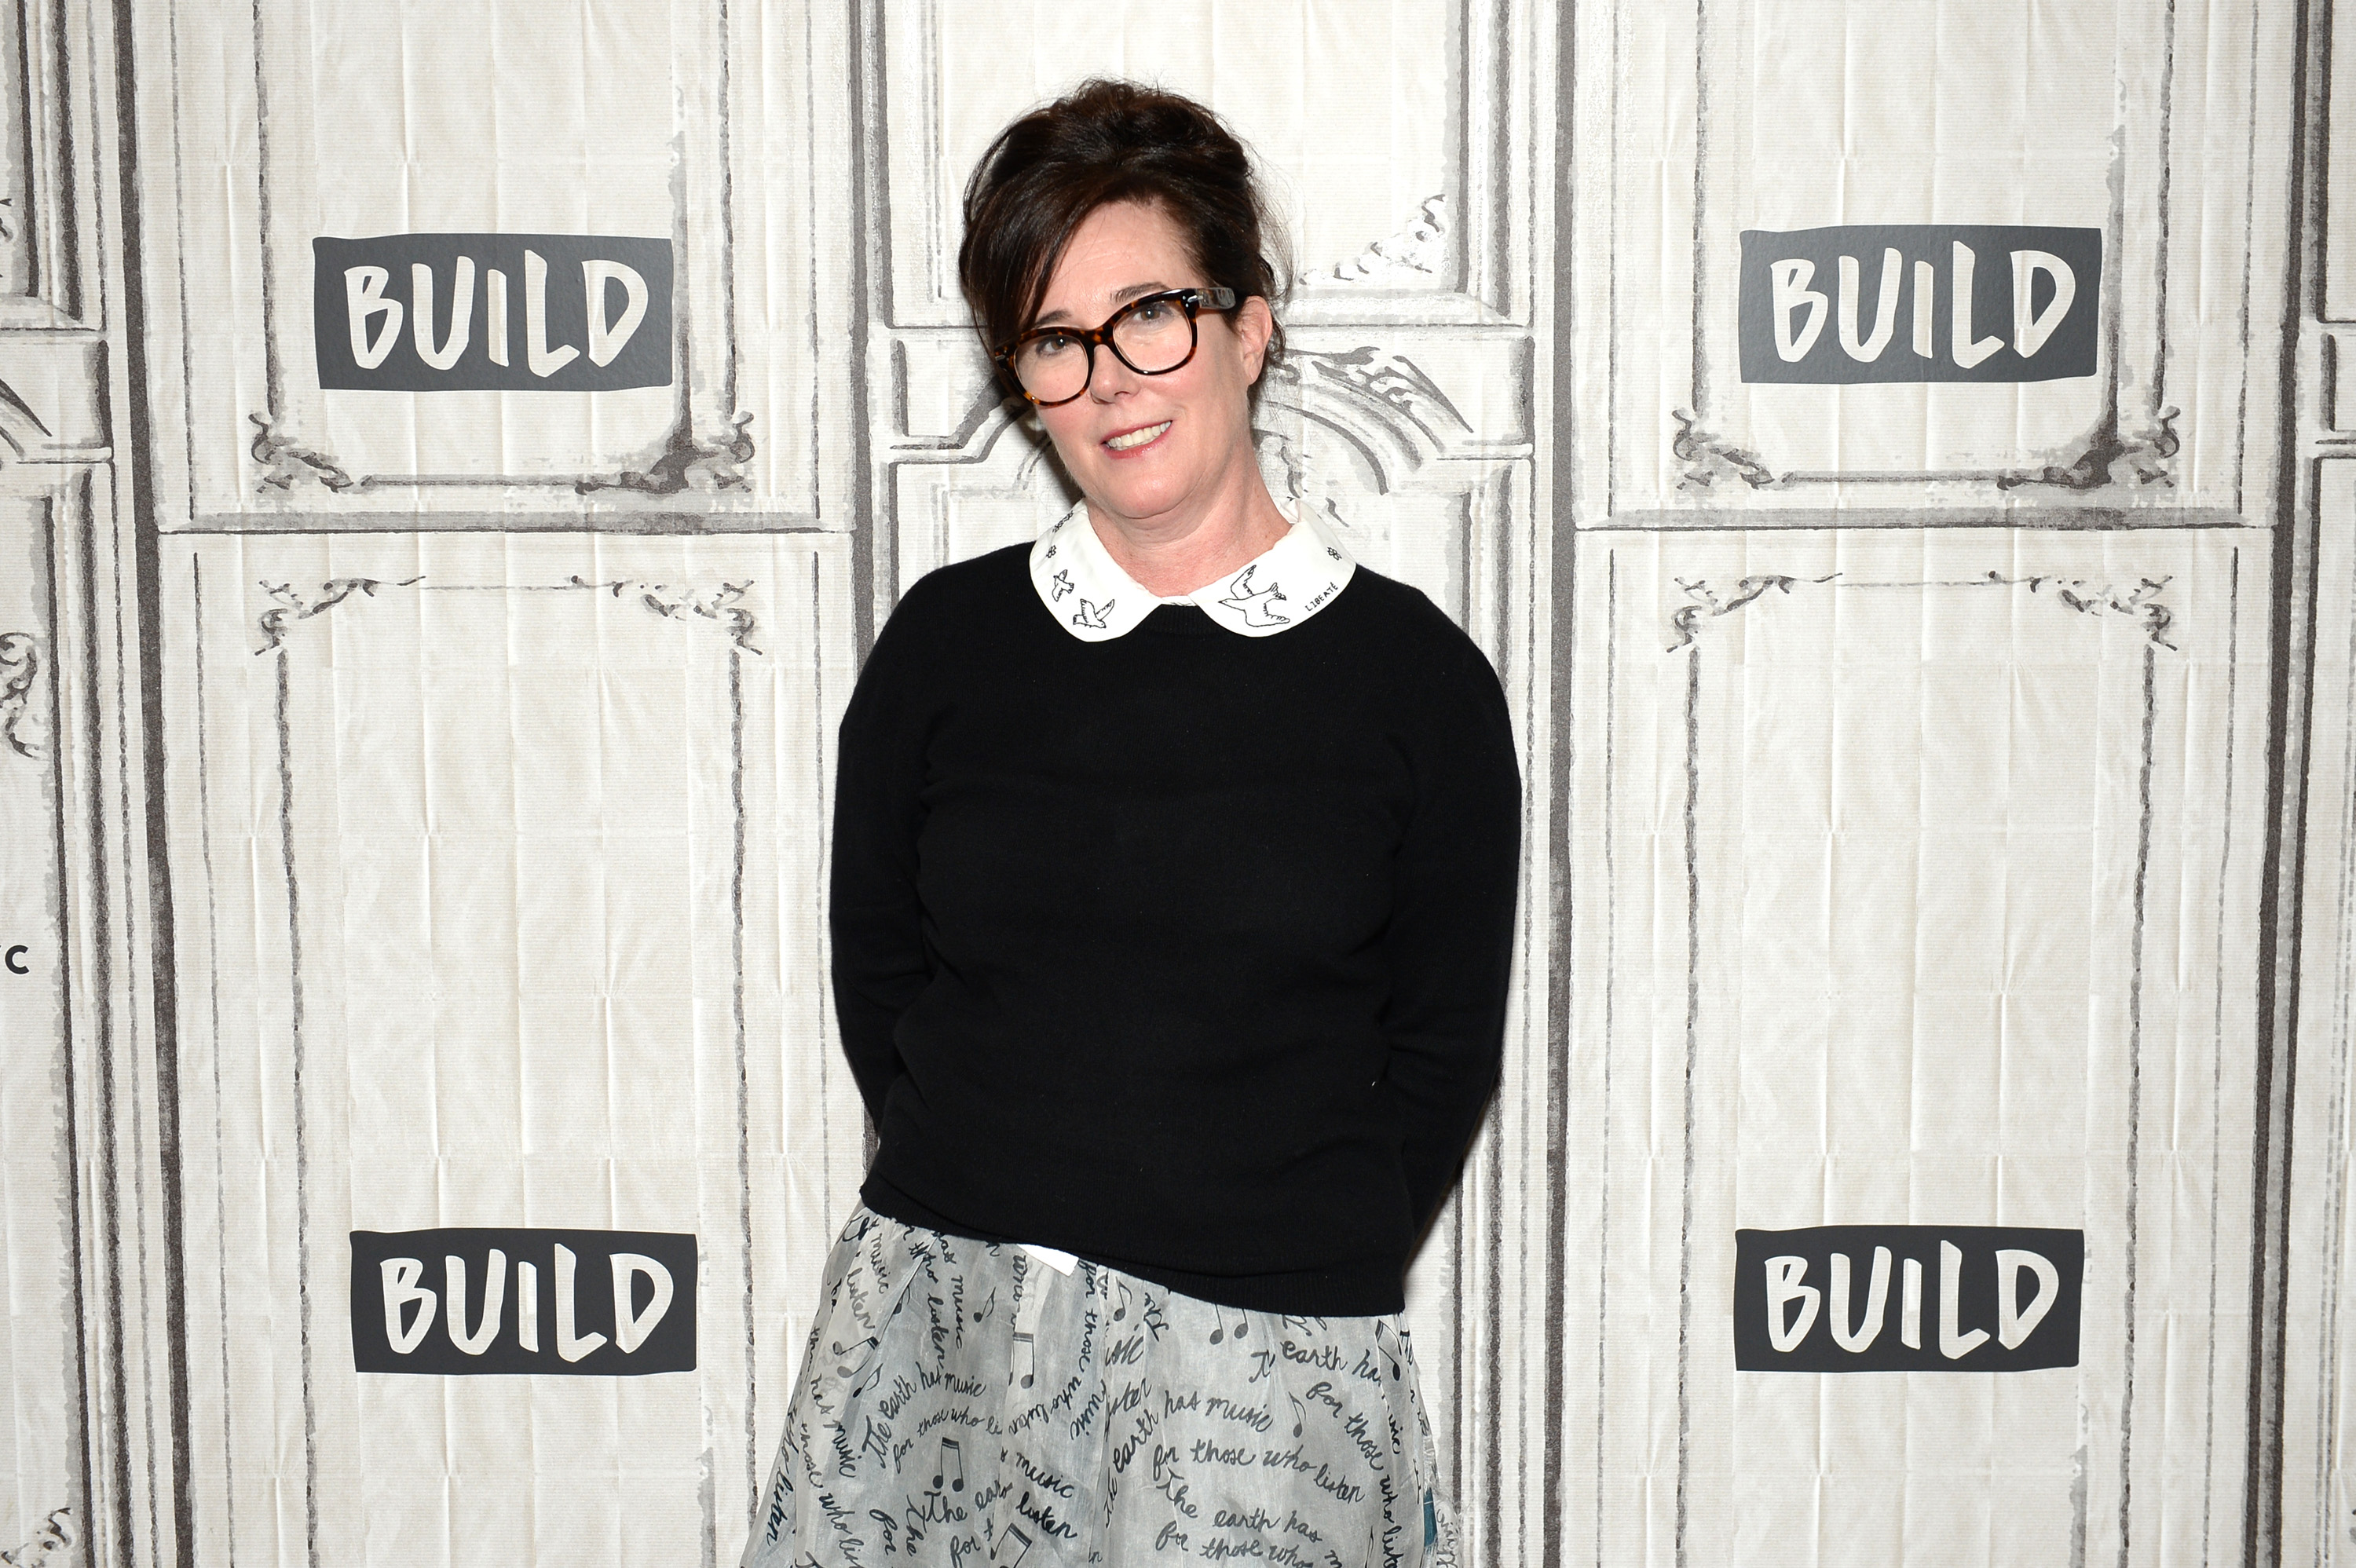 Kate Spade's Sales Have Increased By 600% Following Her Death